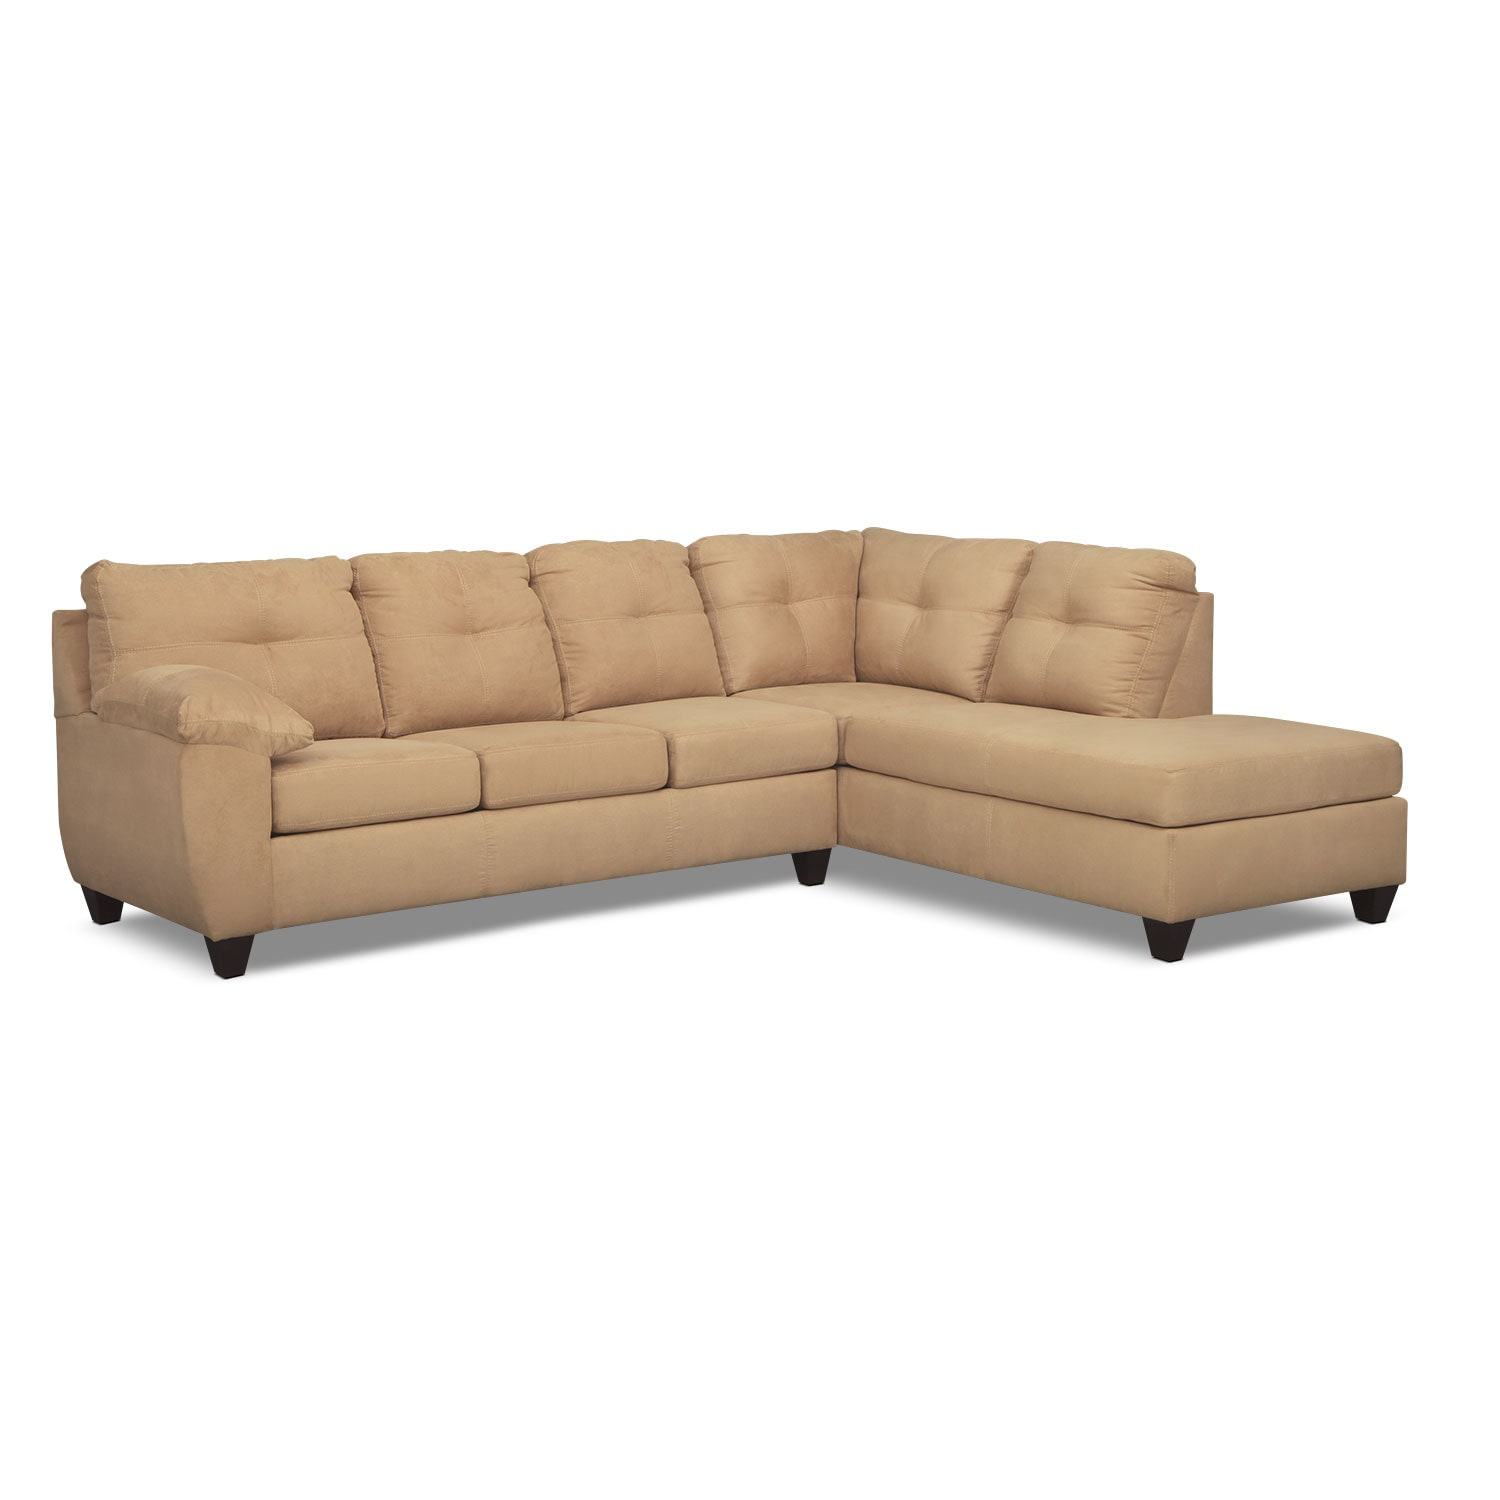 Ricardo 2 Piece Memory Foam Sleeper Sectional With Right Facing Chaise    Camel